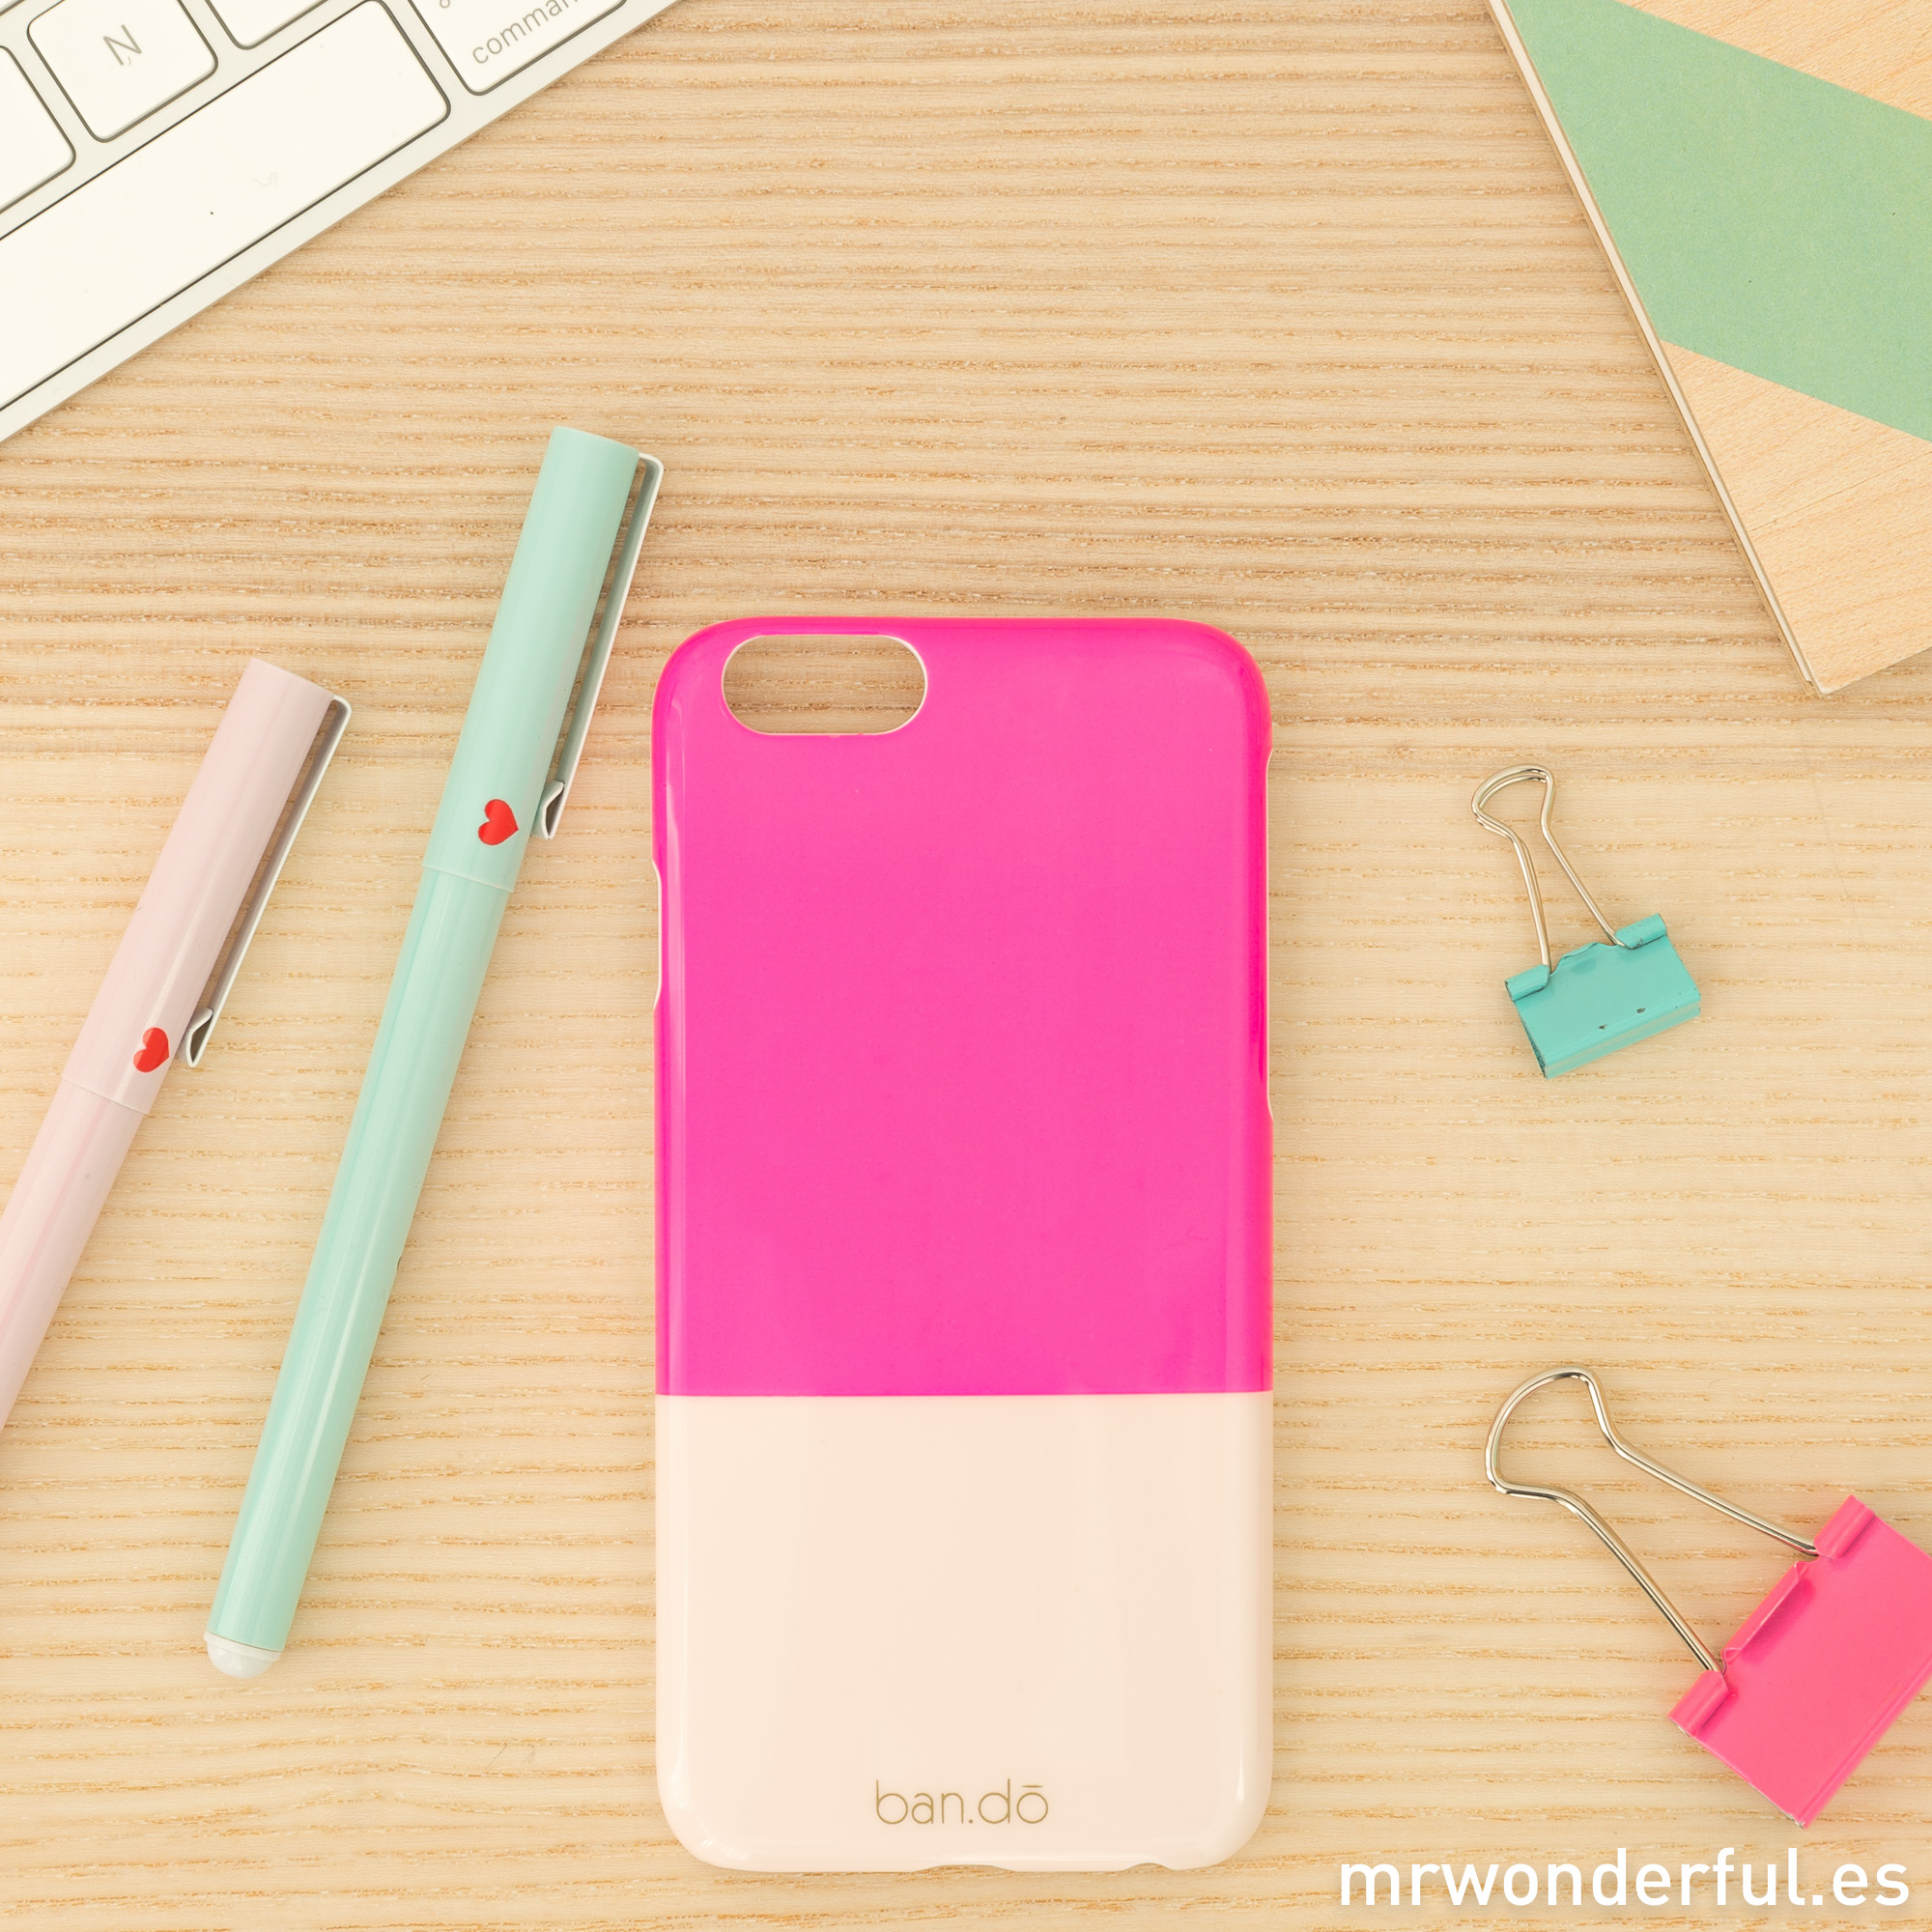 mrwonderful_PRA02802_Carcasa-para-iPhone-6-Pink-color-block-11-Editar